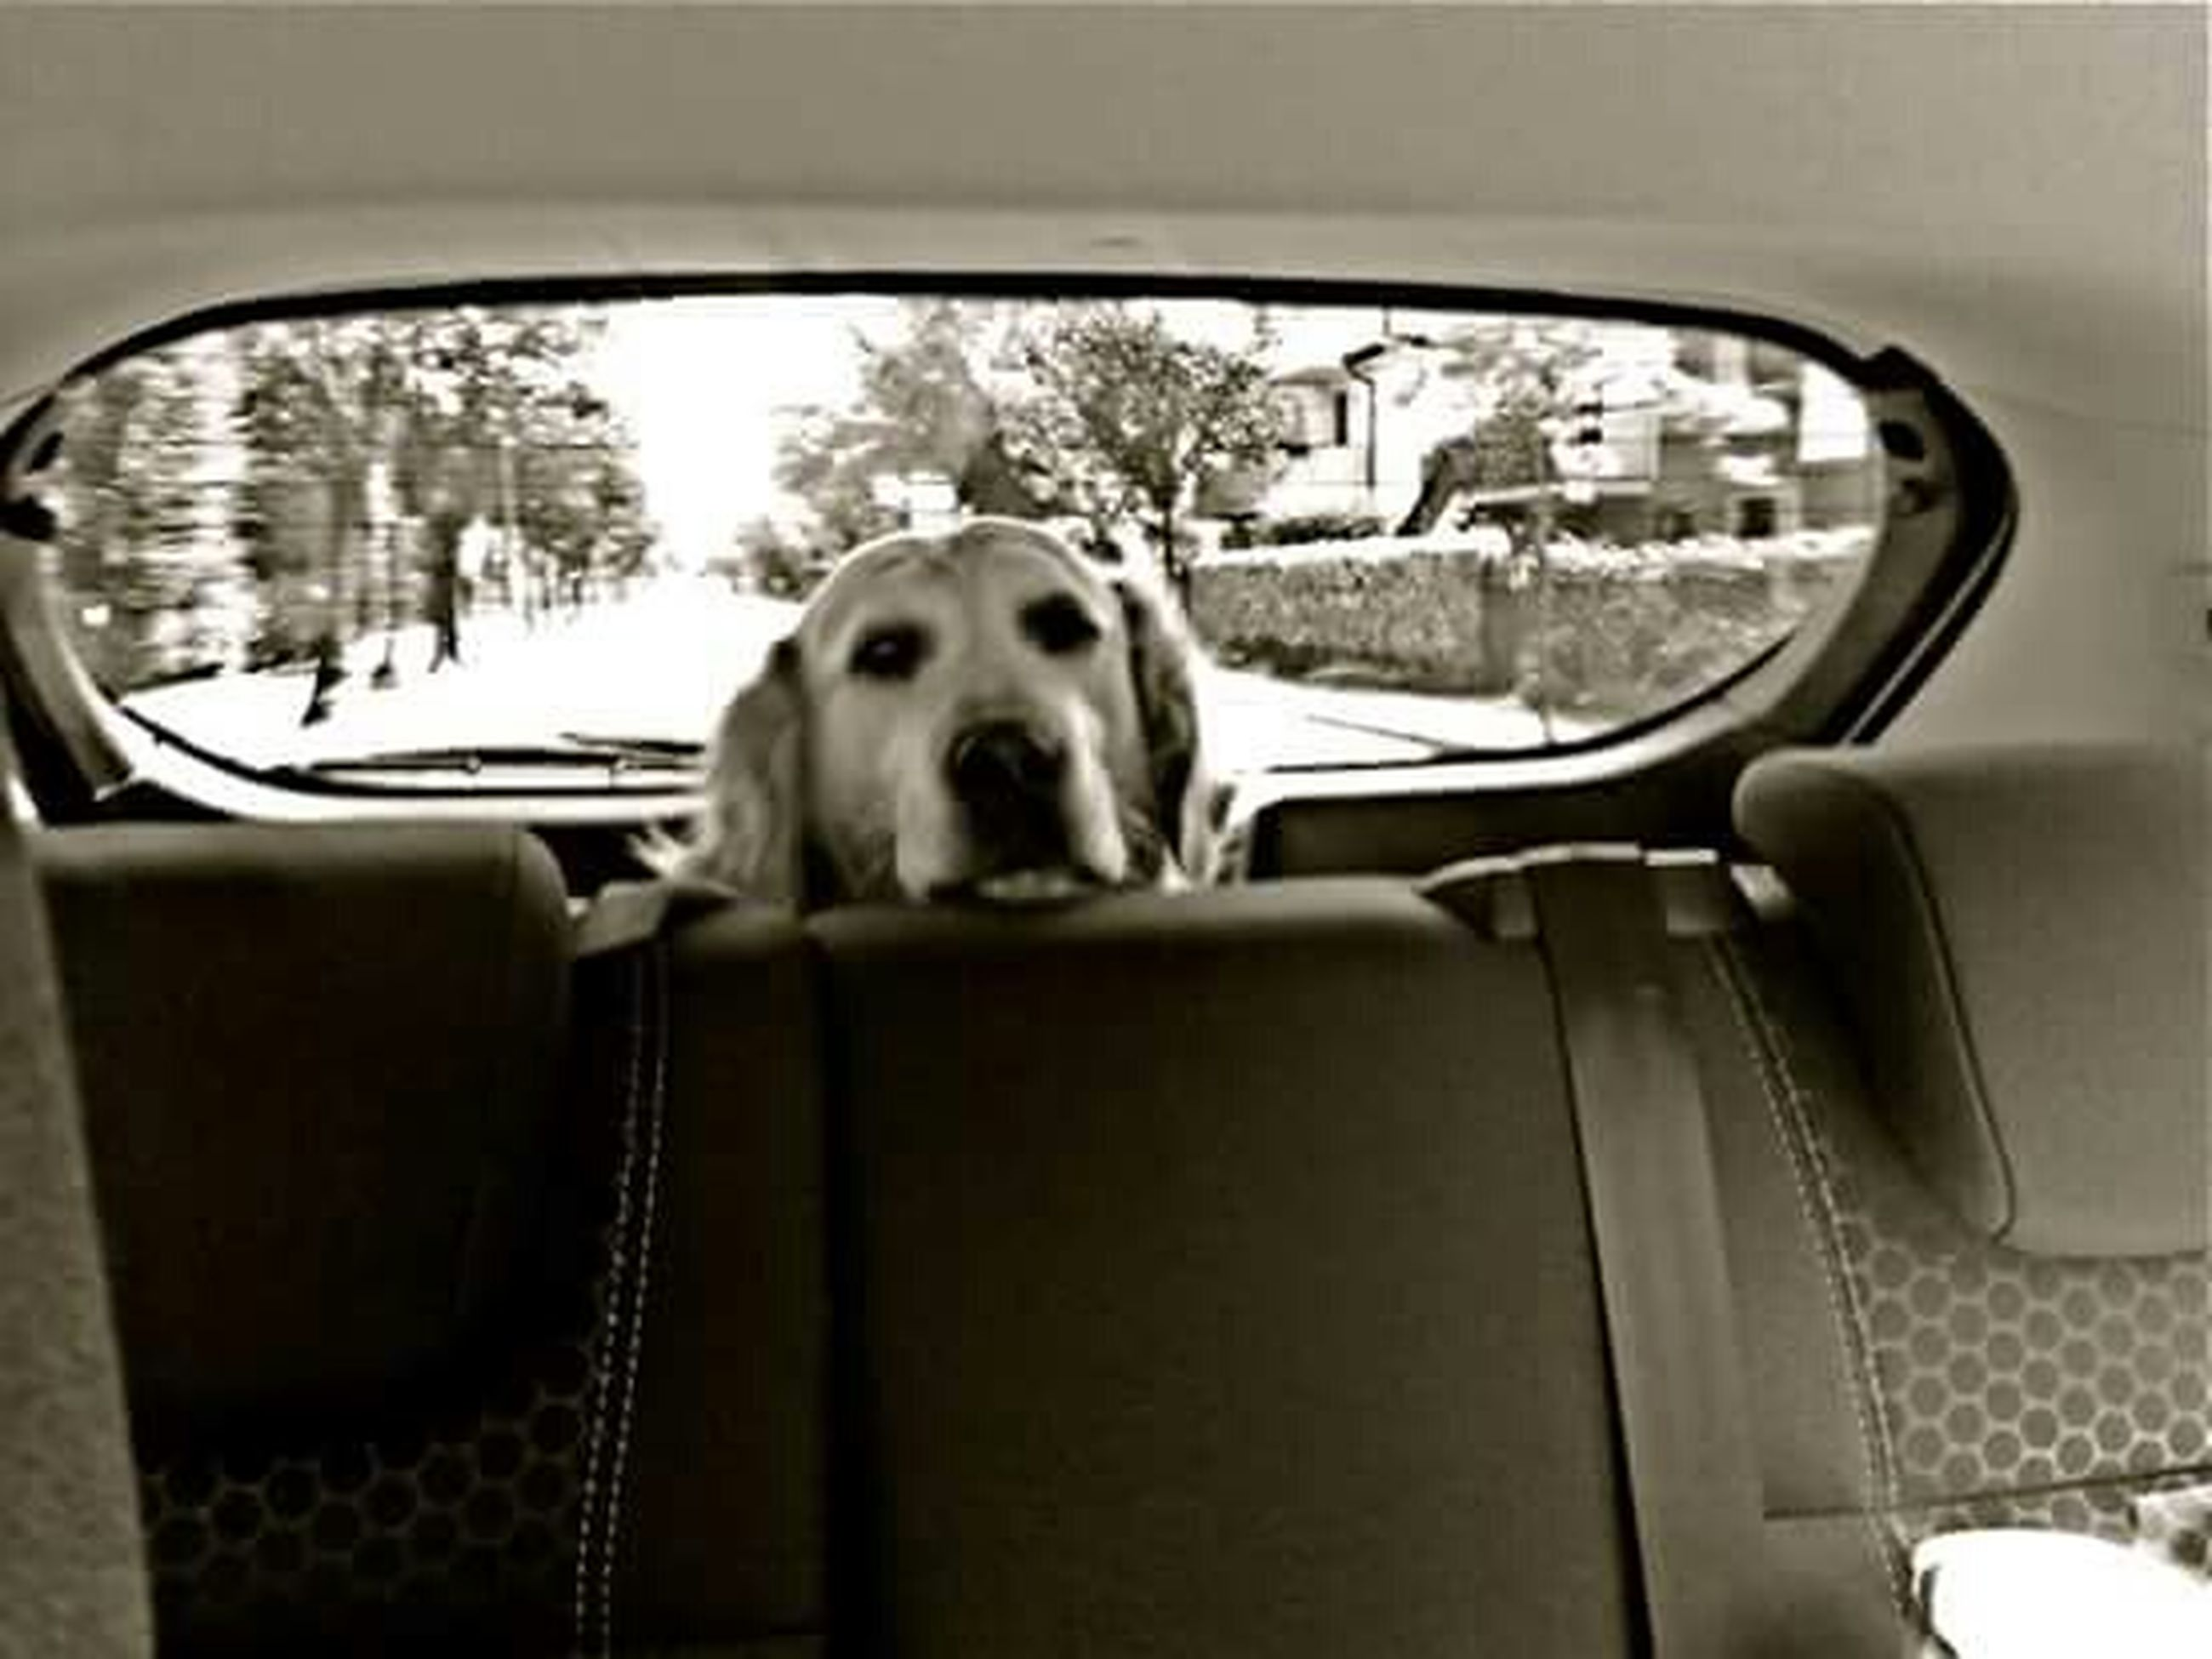 animal themes, one animal, domestic animals, pets, window, transportation, dog, indoors, vehicle interior, mammal, mode of transport, car, land vehicle, sitting, glass - material, looking through window, transparent, car interior, relaxation, day